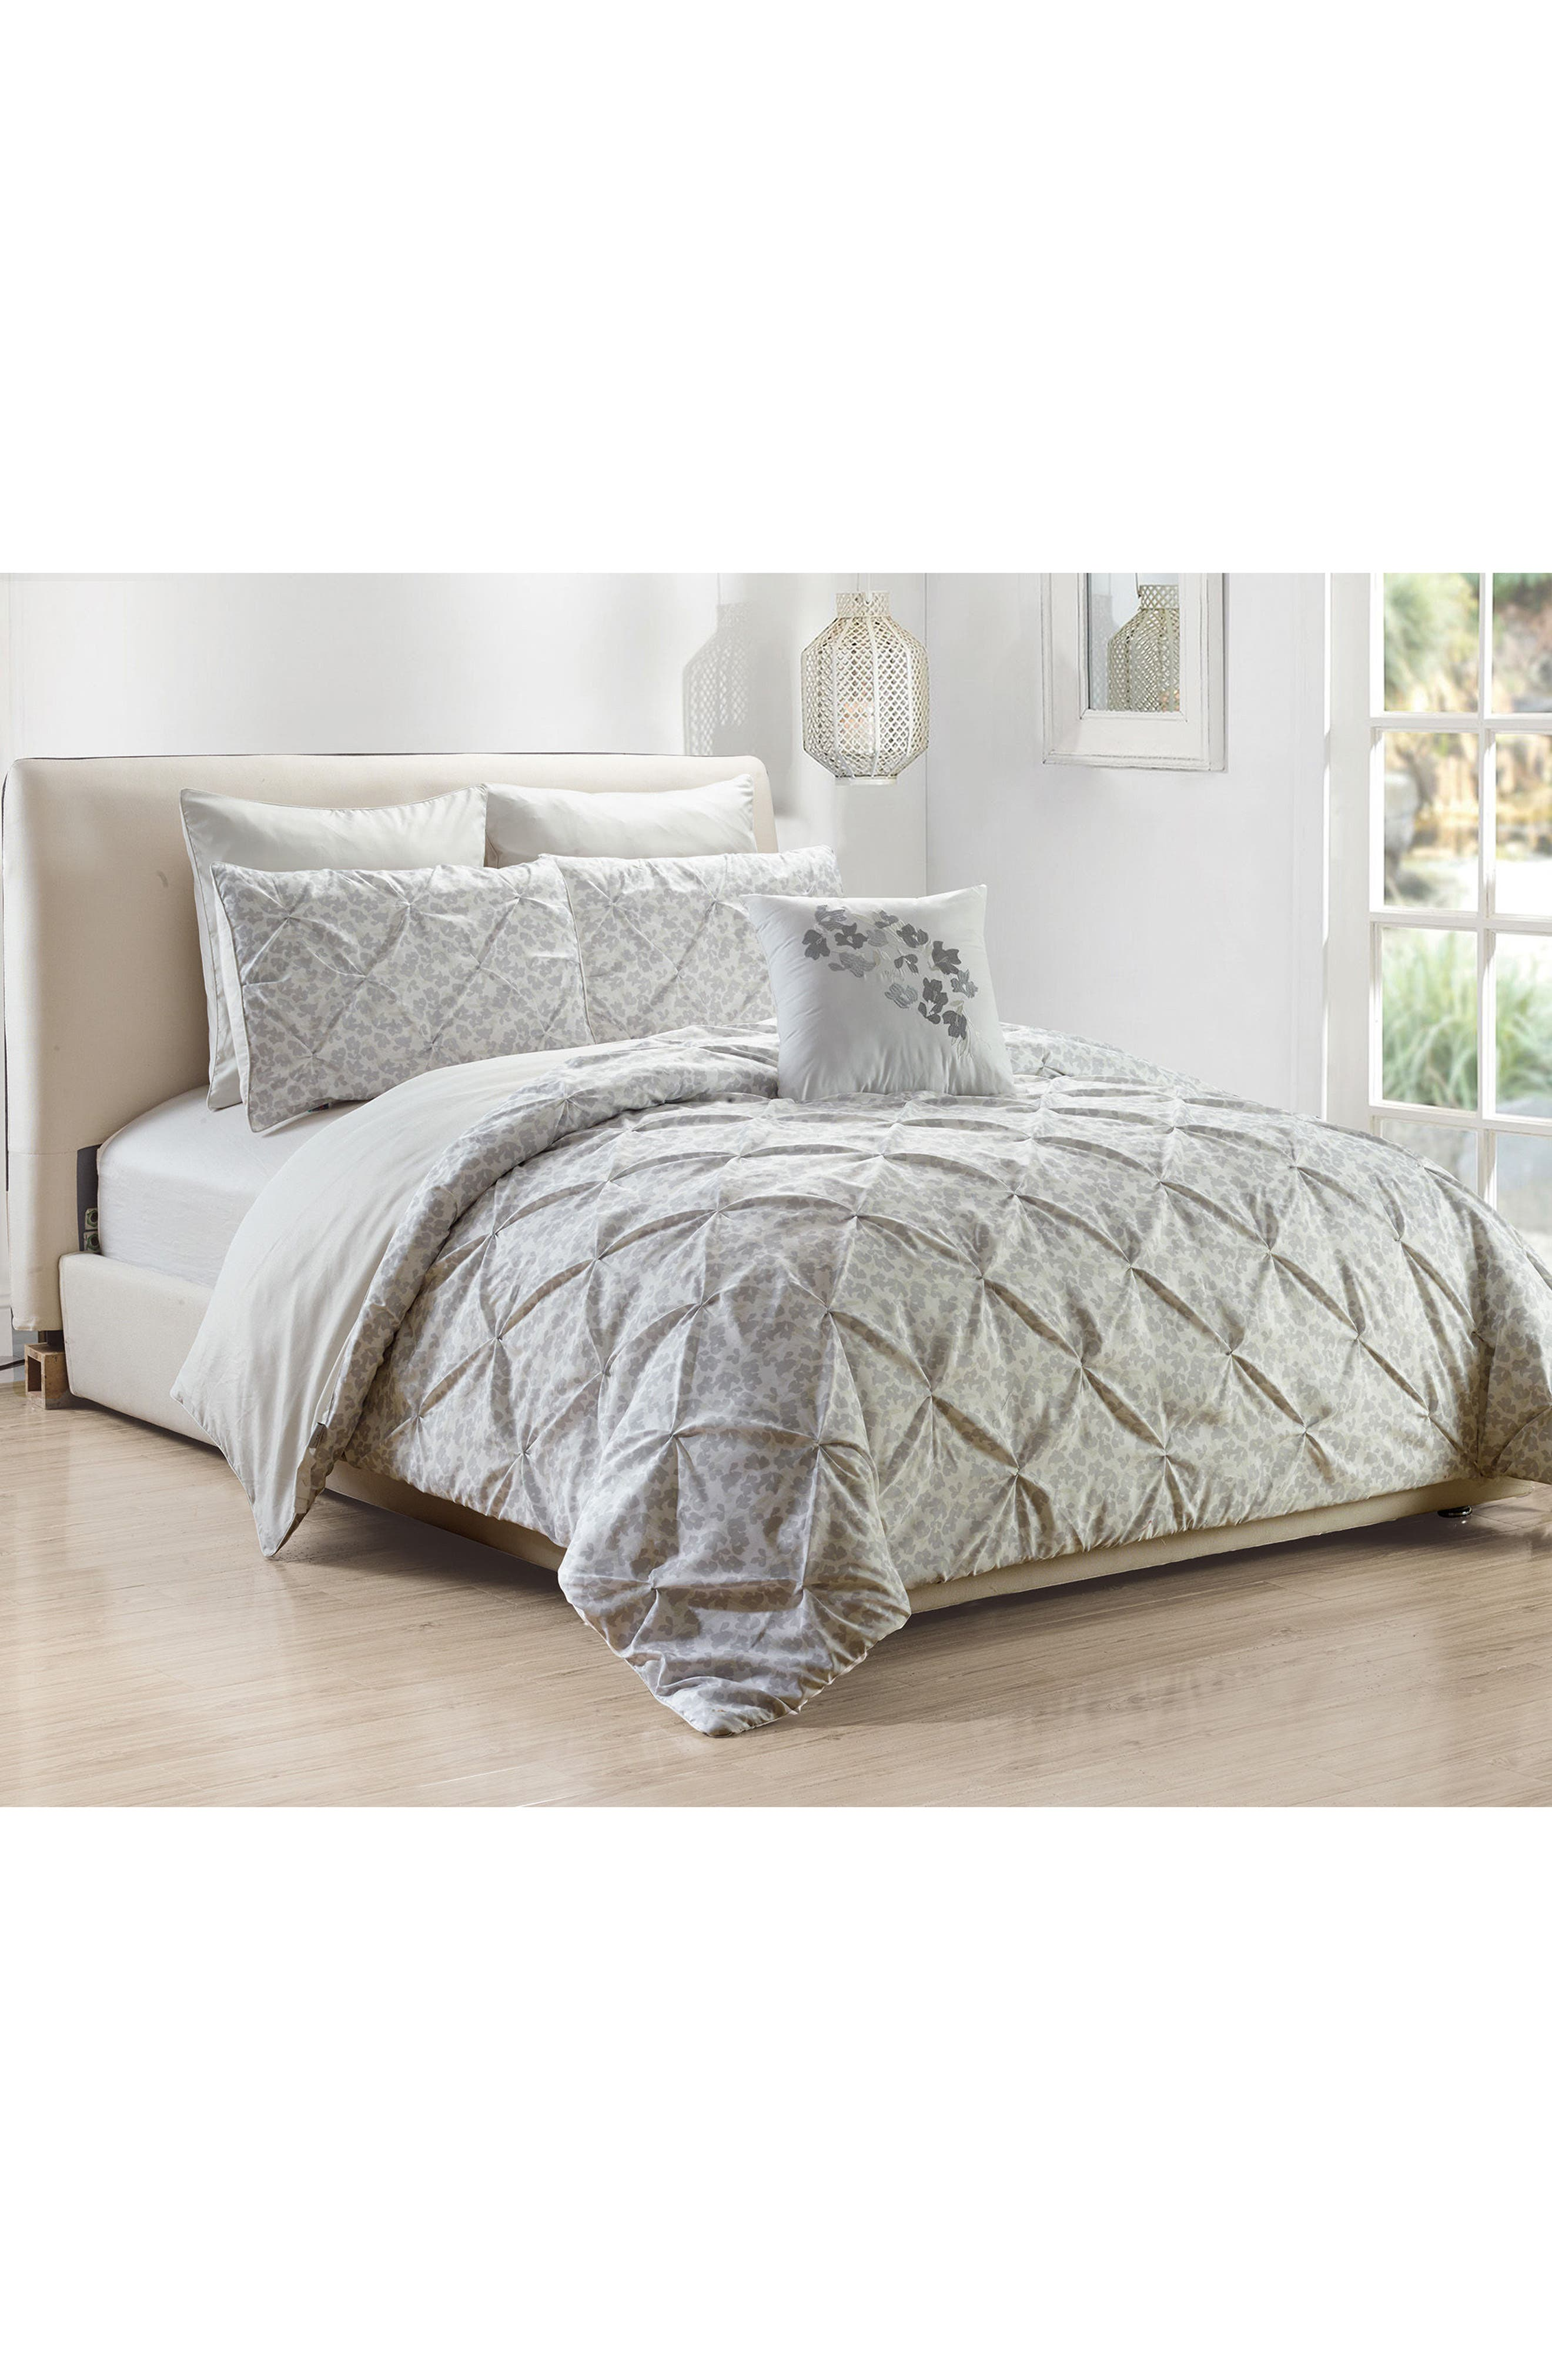 Adith 6-Piece King Comforter Set,                             Alternate thumbnail 3, color,                             020